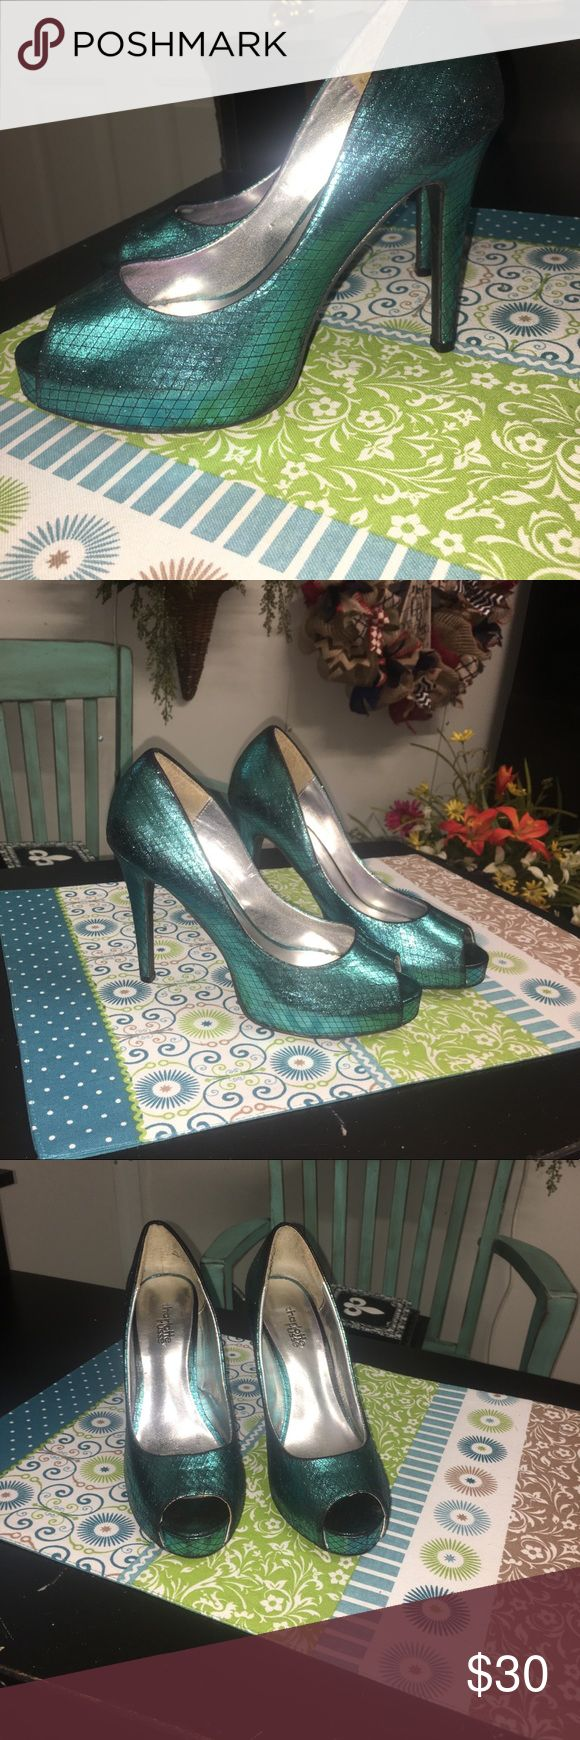 Turquoise Charlotte Russe High heels! Worn once, turquoise, & size 7! Charlotte Russe Shoes Heels